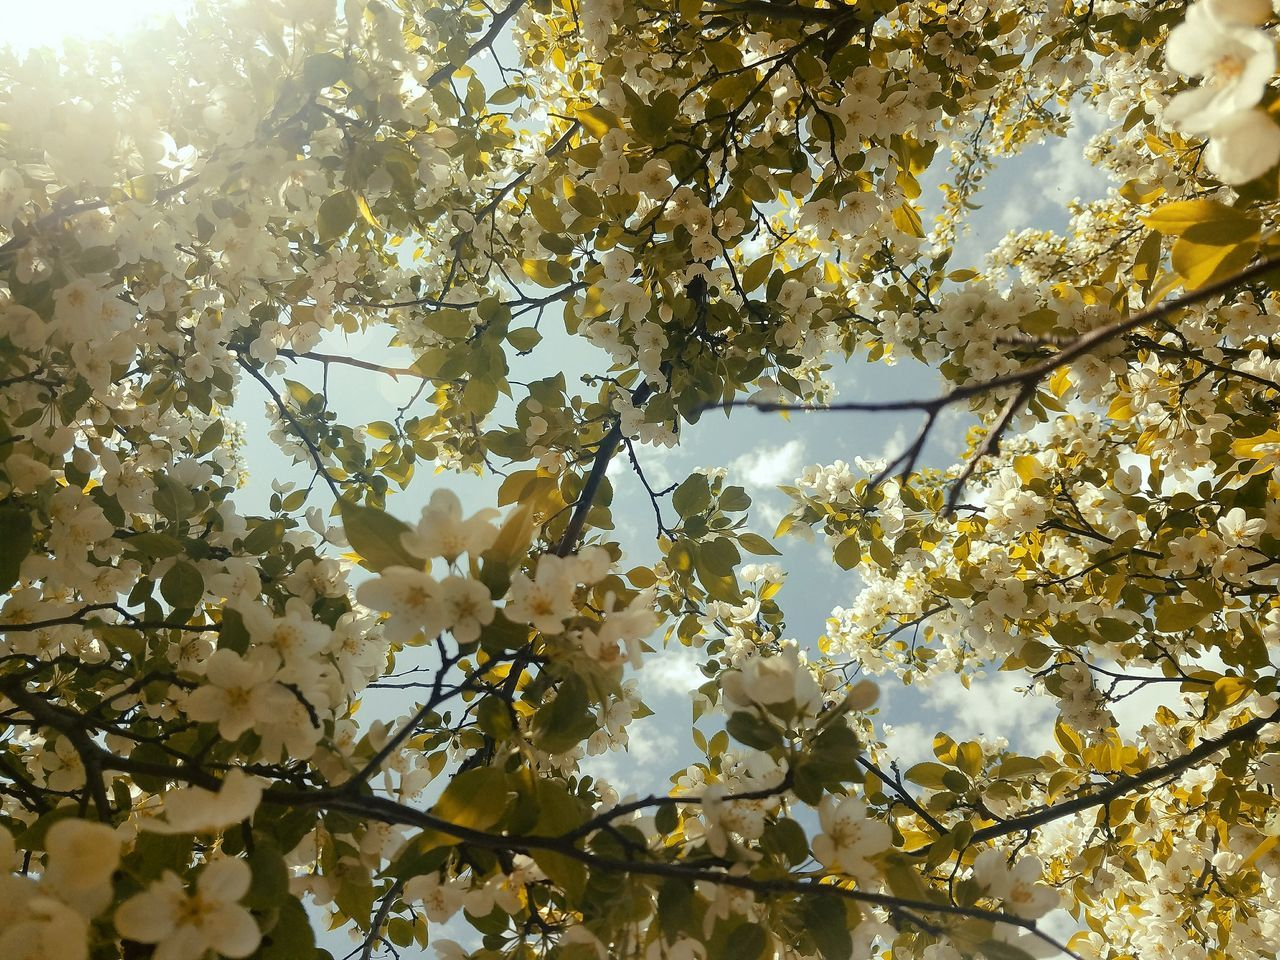 Here's a lovely day. Laying beneath this beauty, on a blanket with a good book in my hands. Yup Nature Tree Branch Full Frame Backgrounds Flower Sky Day Bokeh Android Photography Samsung Galaxy S7 Edge EyeEm Best Shots EyeEm